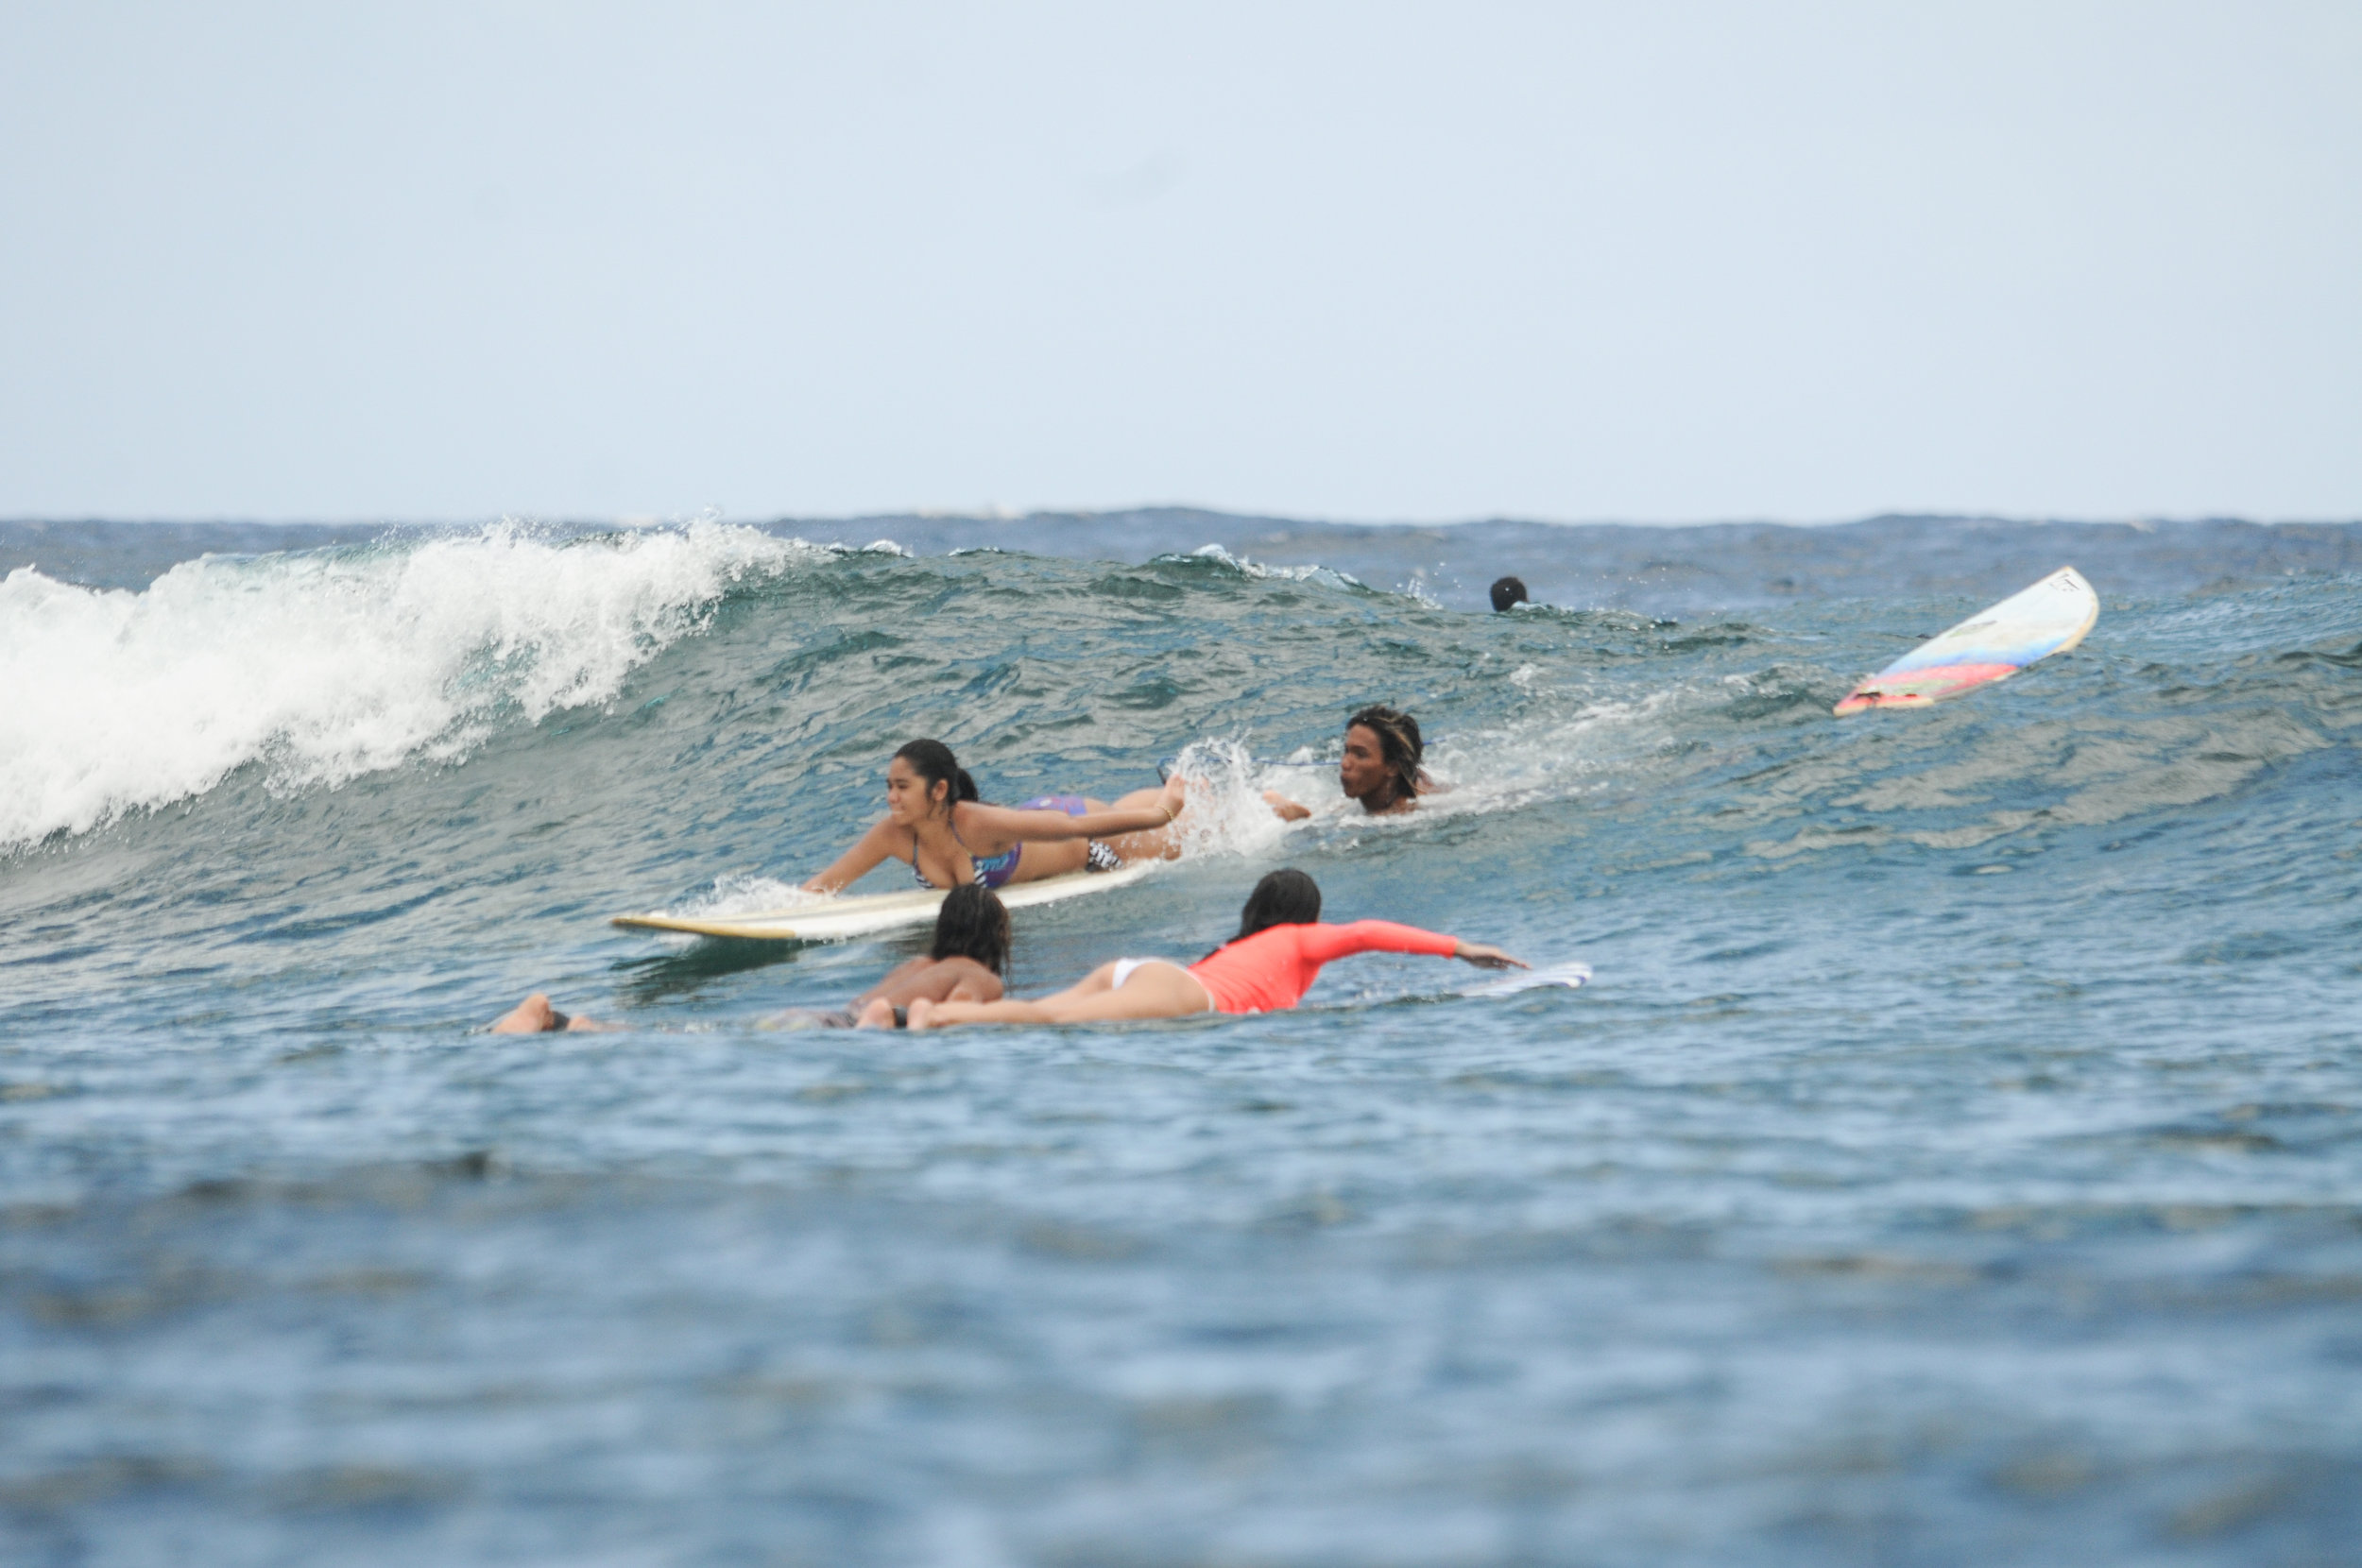 PRIVATE SURF LESSON - 1200 PER session INCLUDING THE BOARD RENTAL, theory, water basics and surf 2 hours